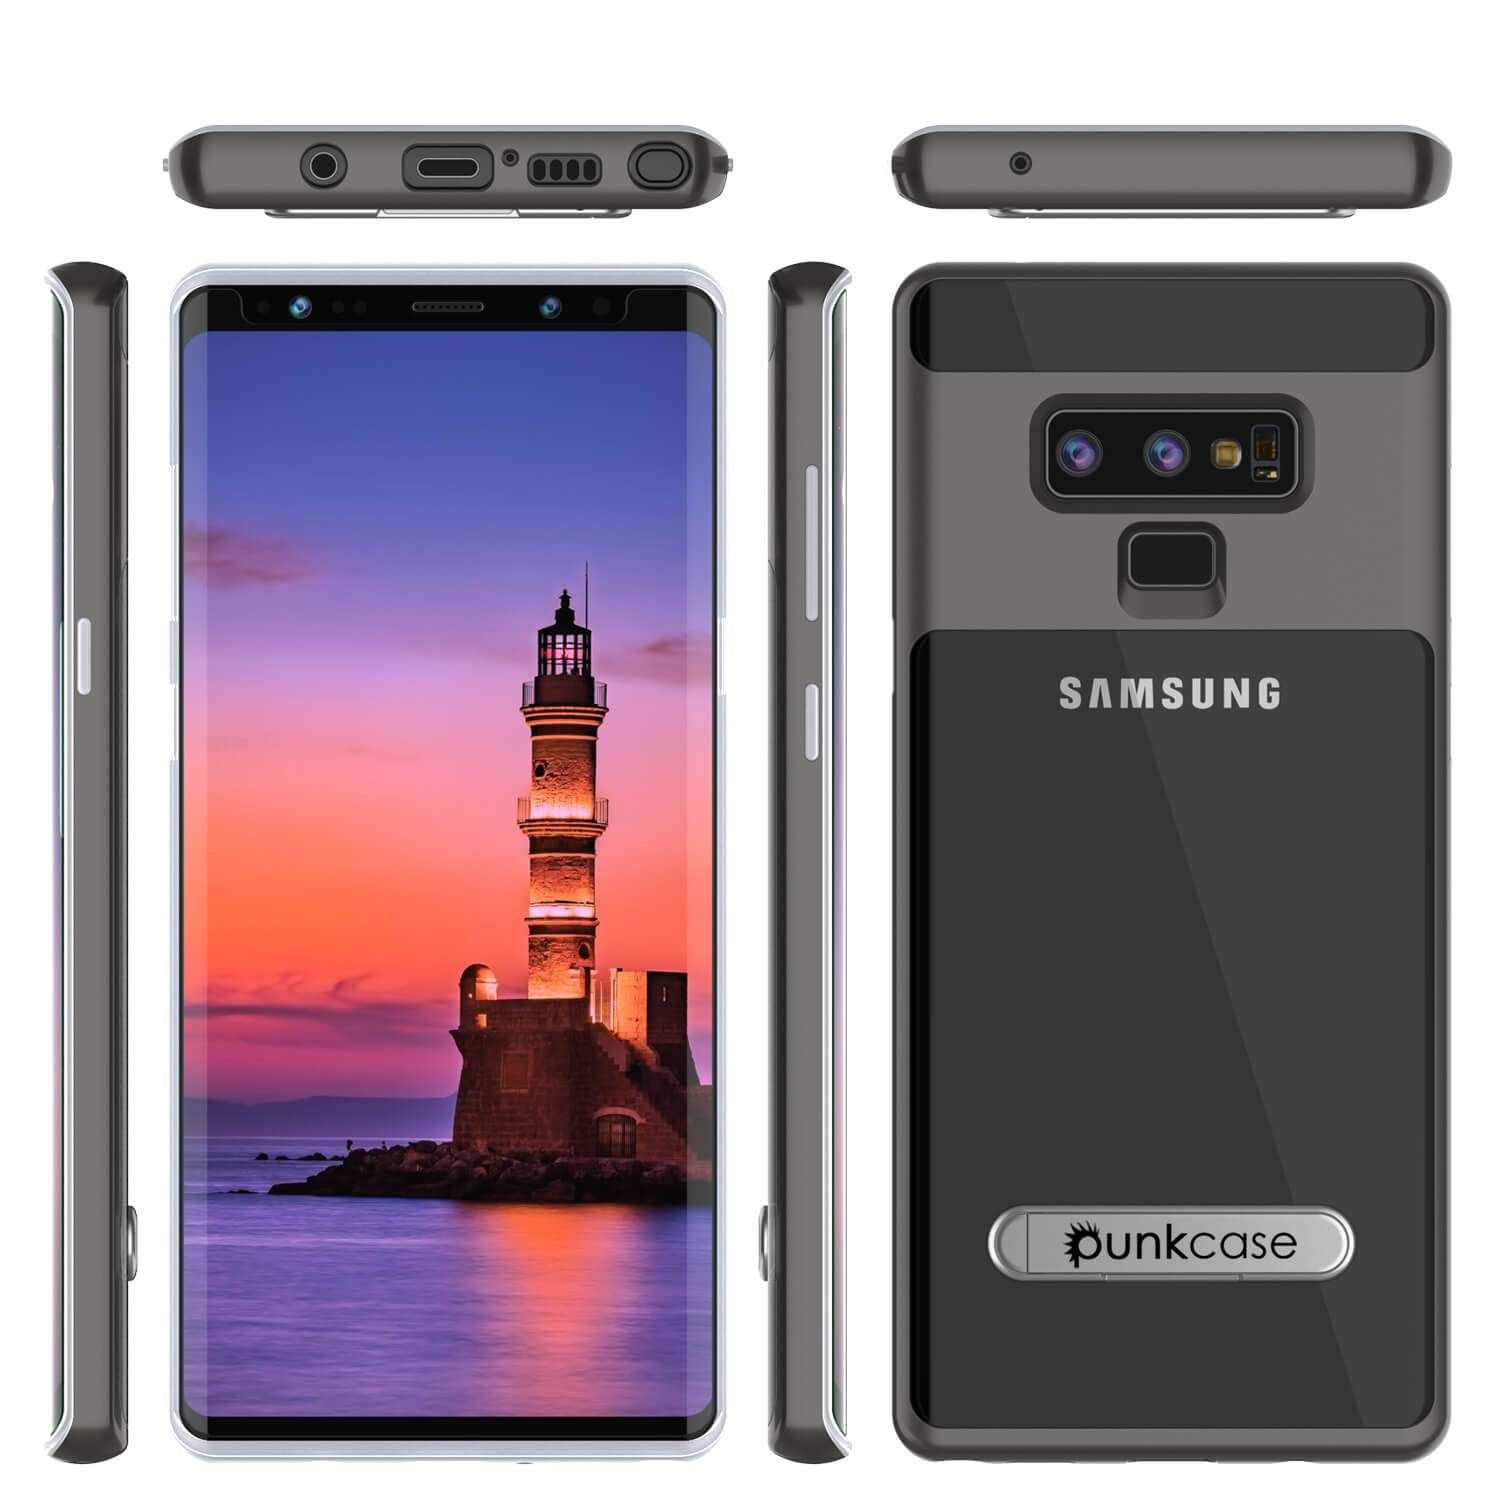 Galaxy Note 9 Lucid 3 0 Punkcase Armor Cover W Integrated Kickstand And Screen Protector Grey Galaxy Note Galaxy Galaxy Note 9